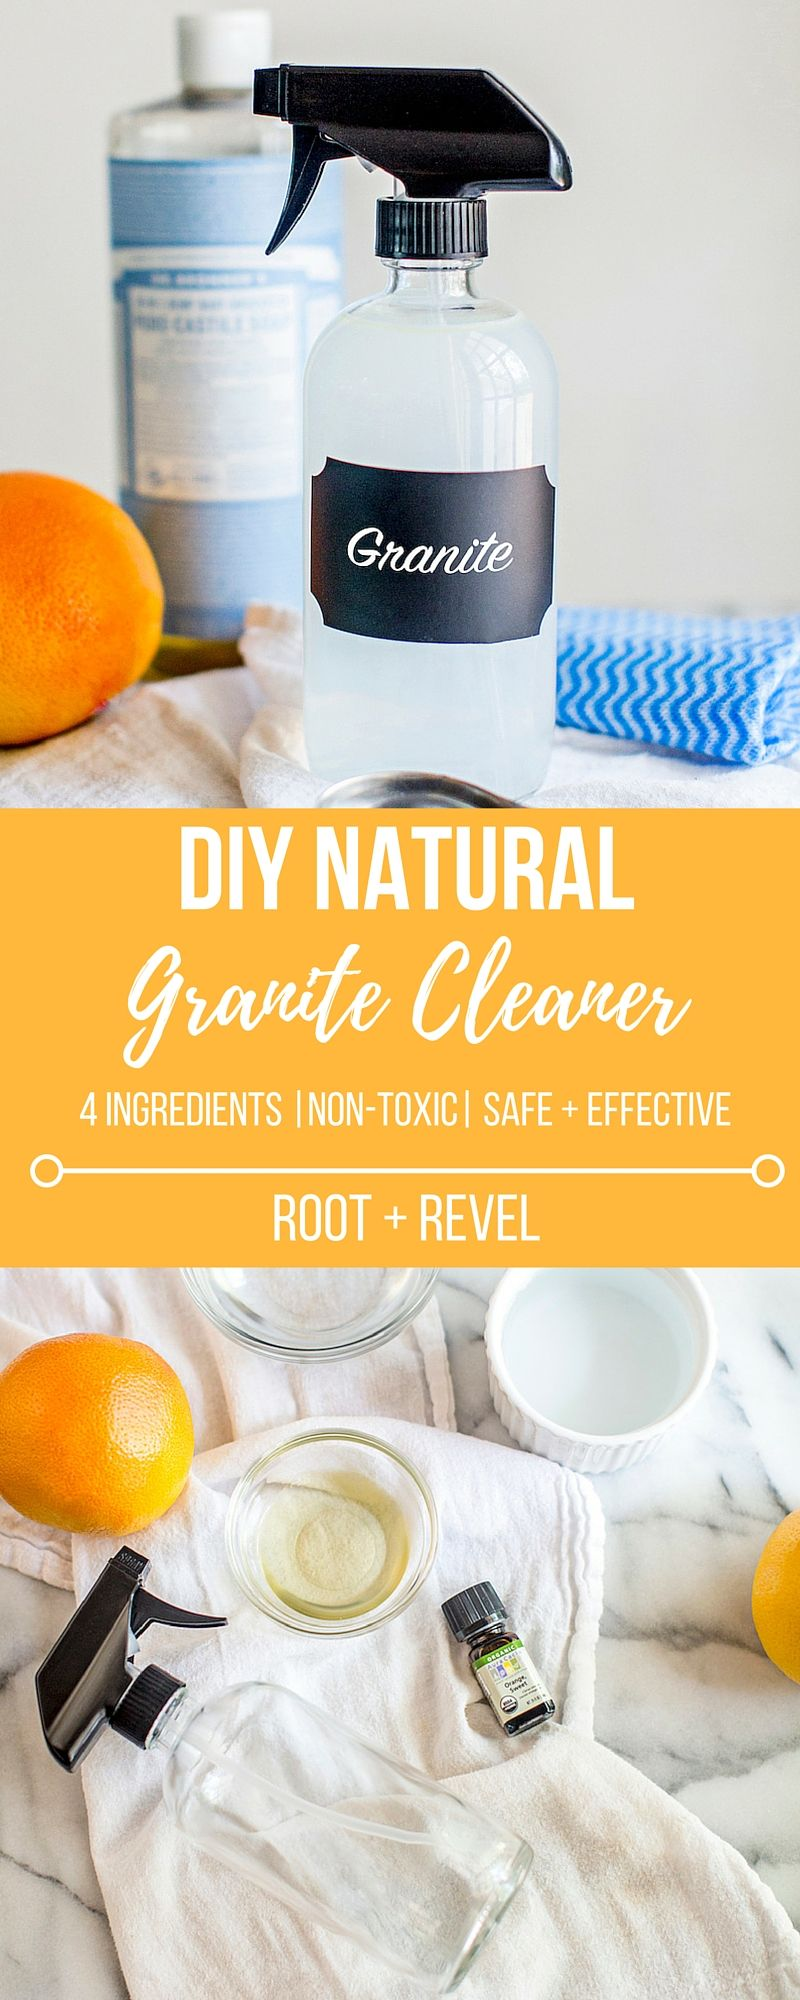 DIY Natural Granite Cleaner with Essential Oils Recipe